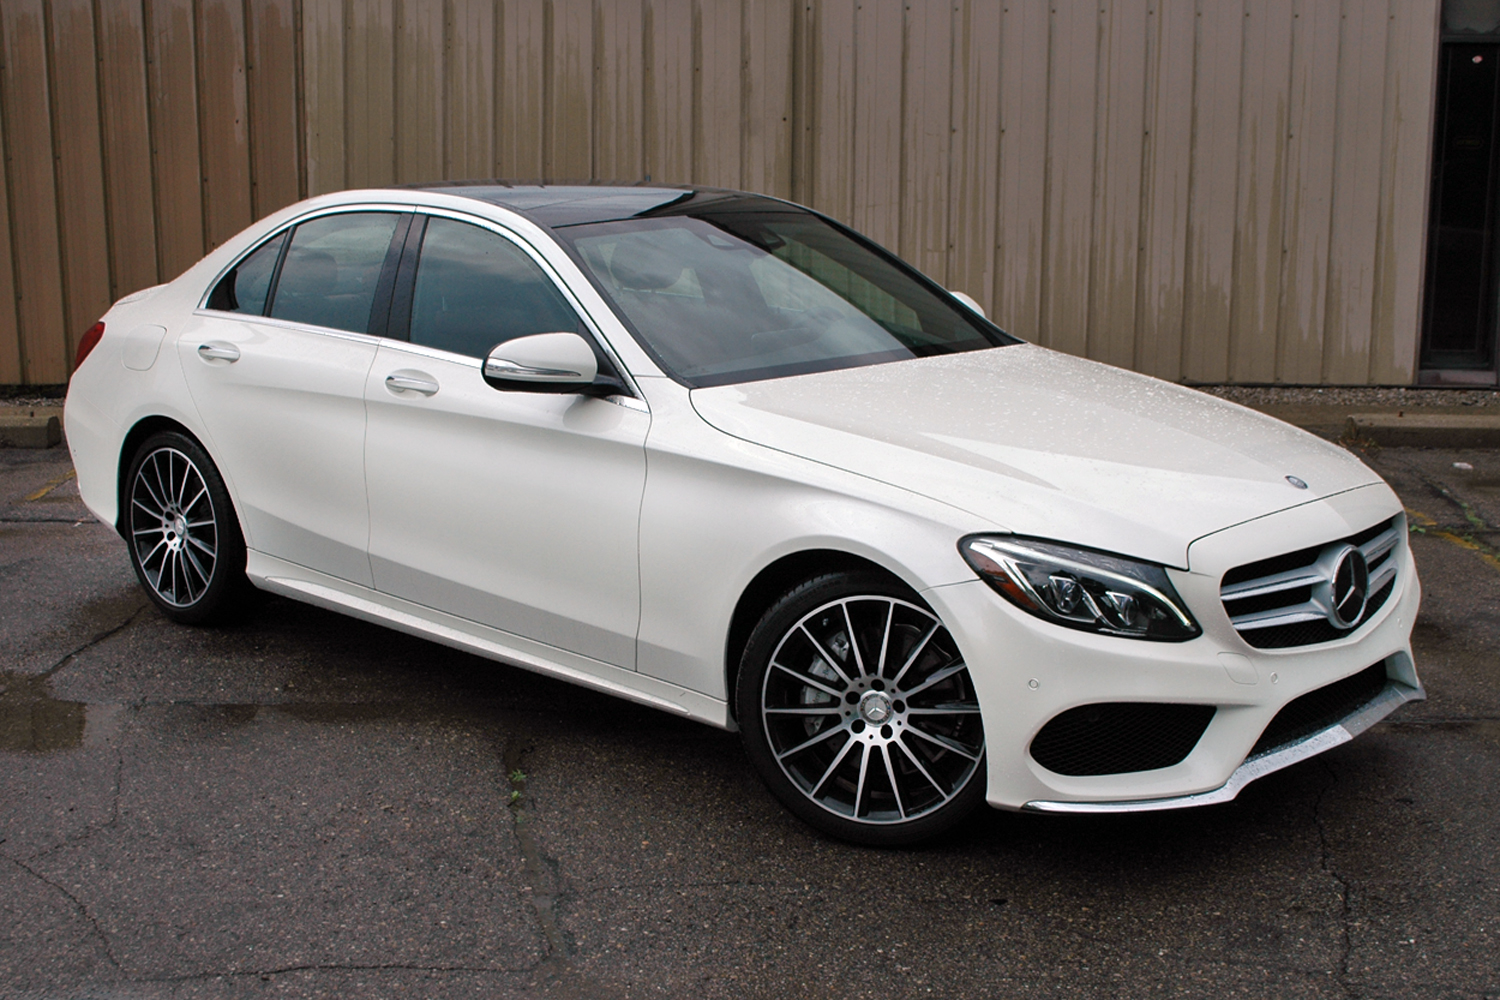 2015 mercedes c400 driven review top speed for 2015 mercedes benz c400